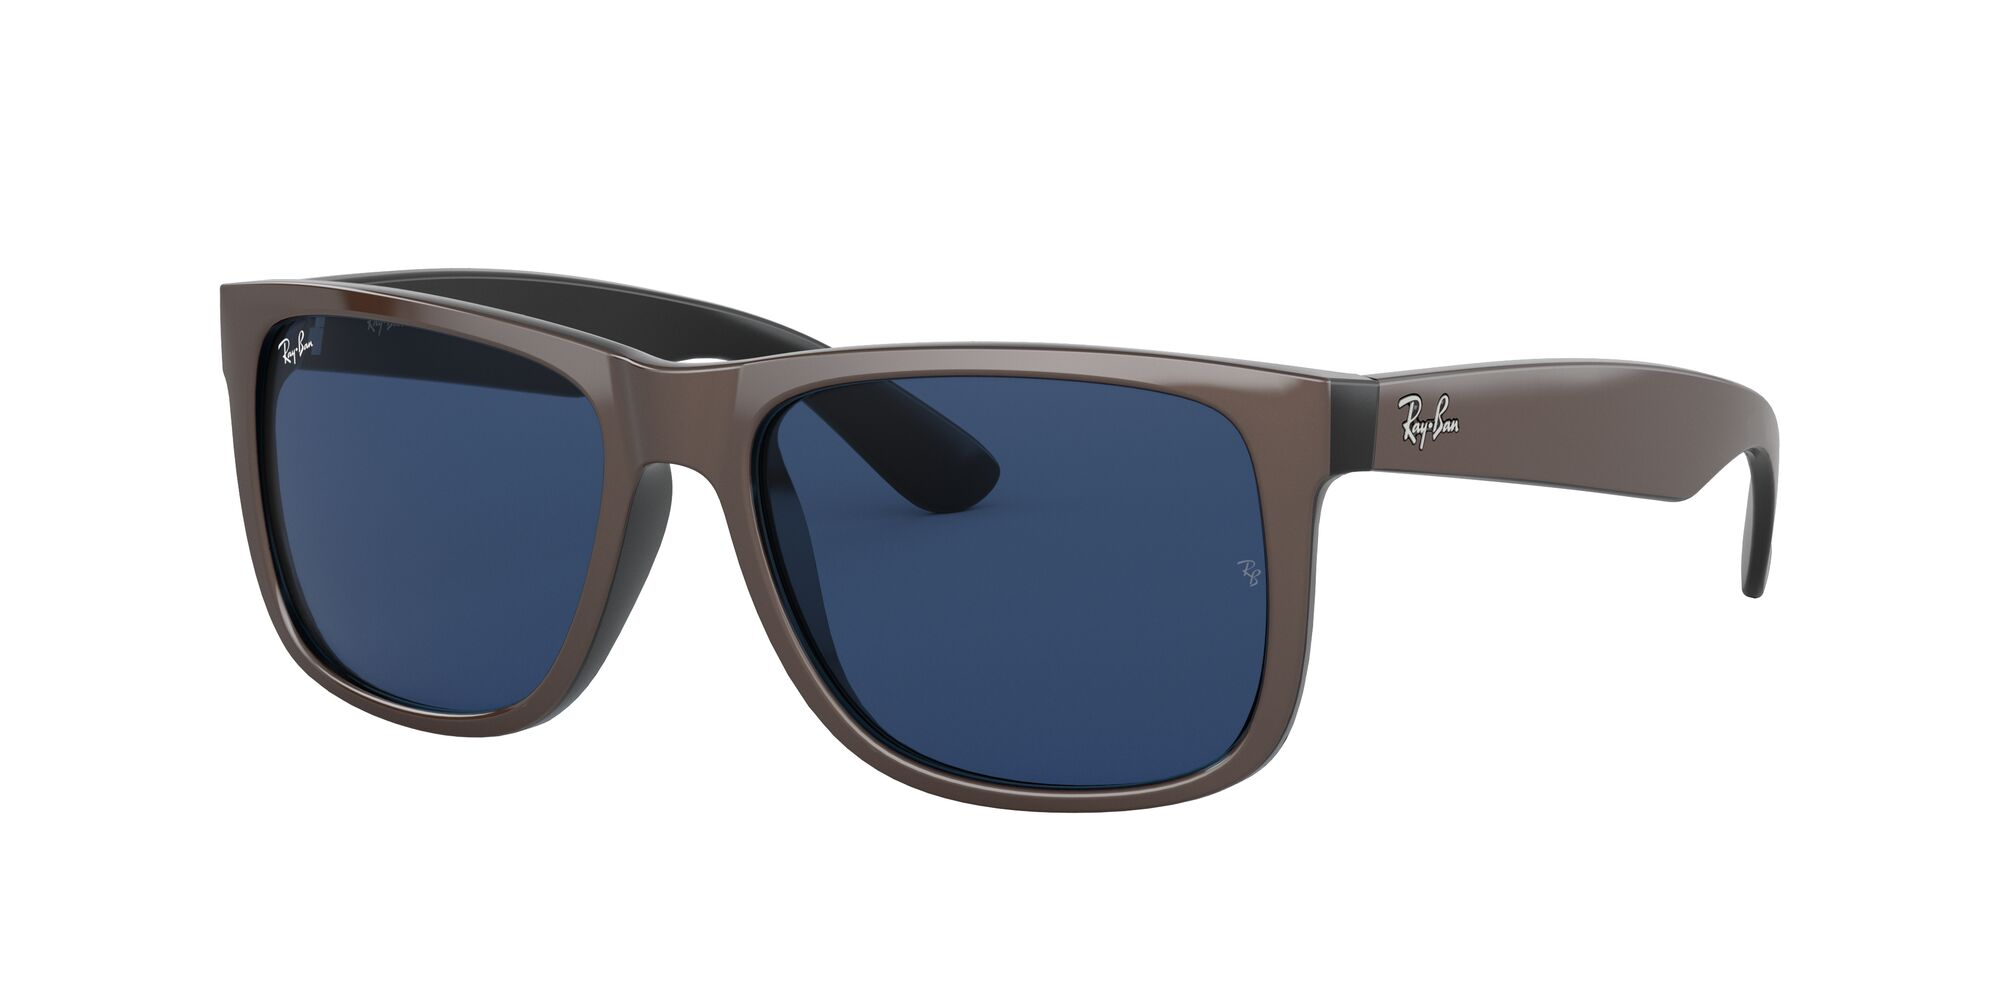 Angle_Left01 Ray-Ban Ray-Ban 0RB4165 647080 53/16 Bruin, Zilver/Blauw